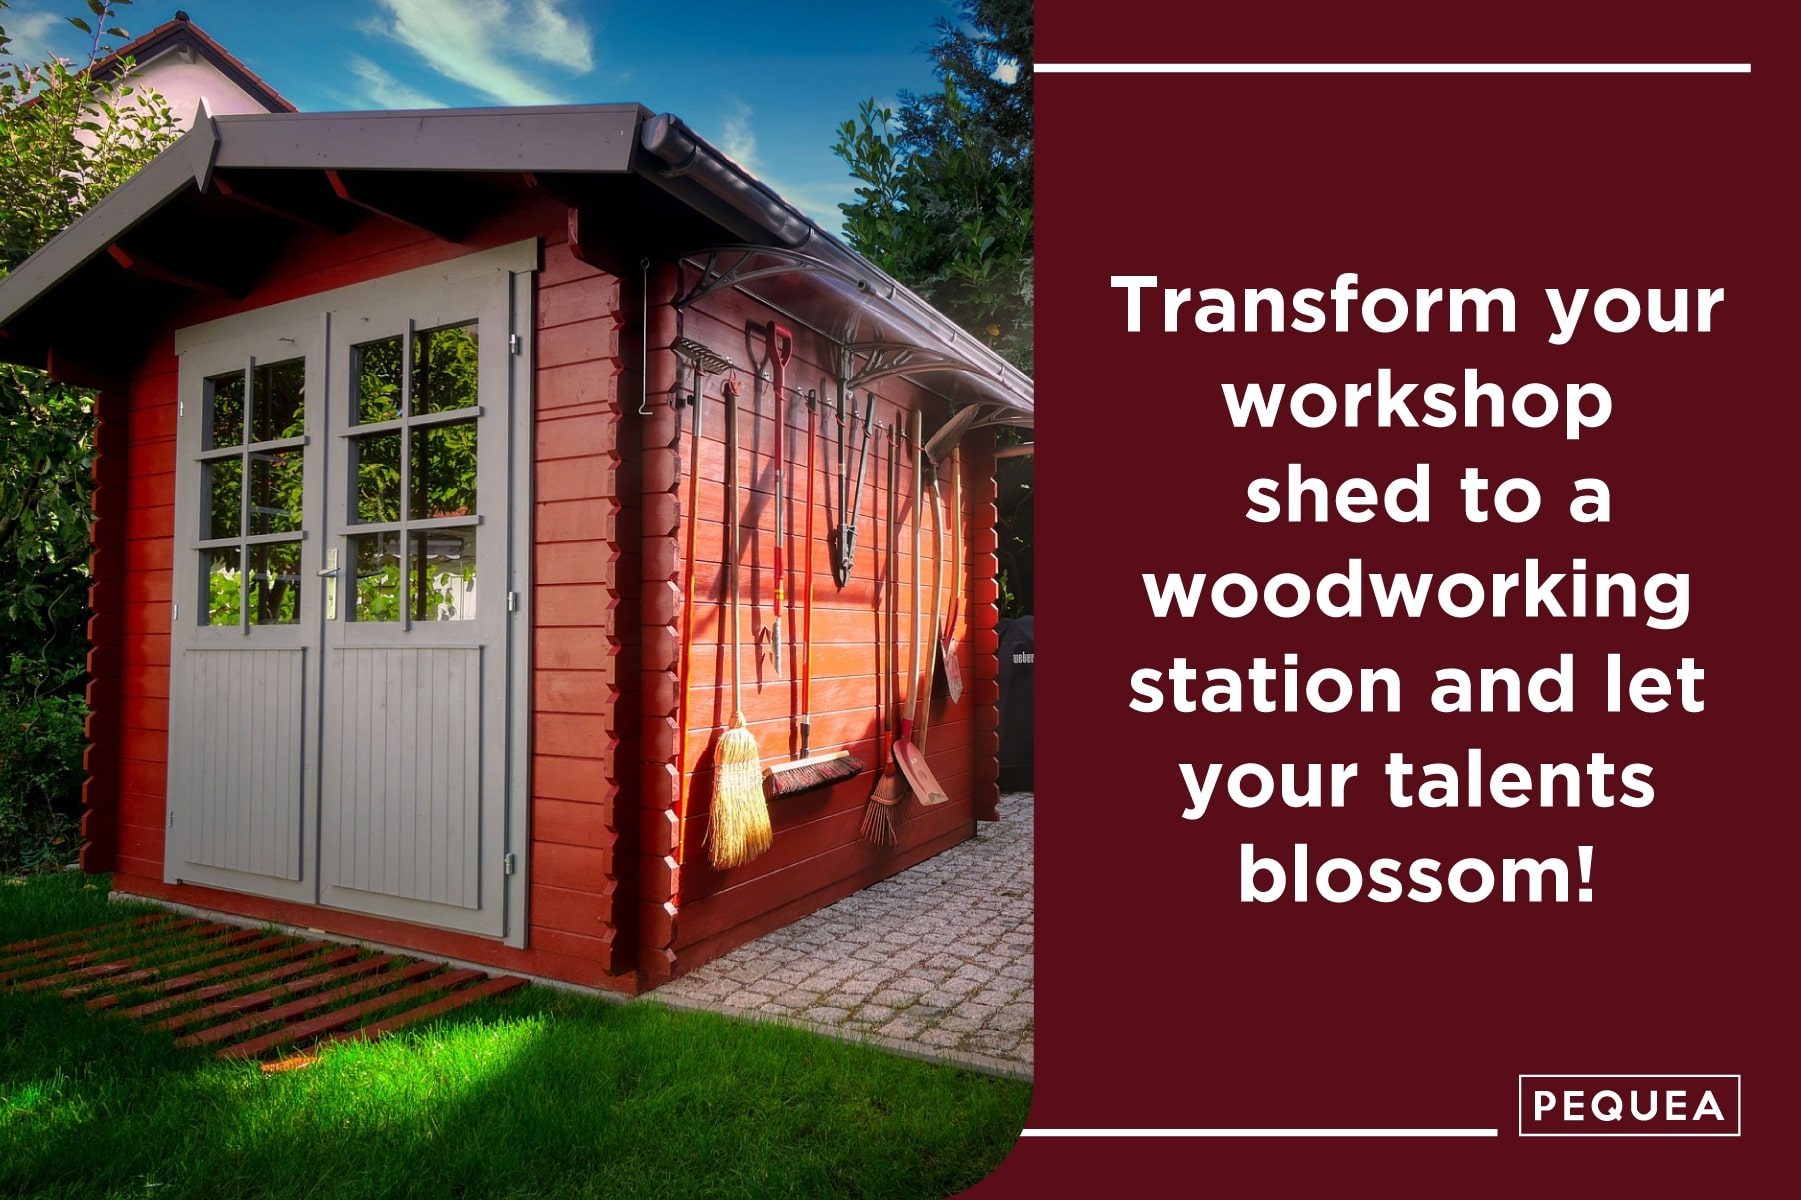 a workshop shed can be used as a woodworking area